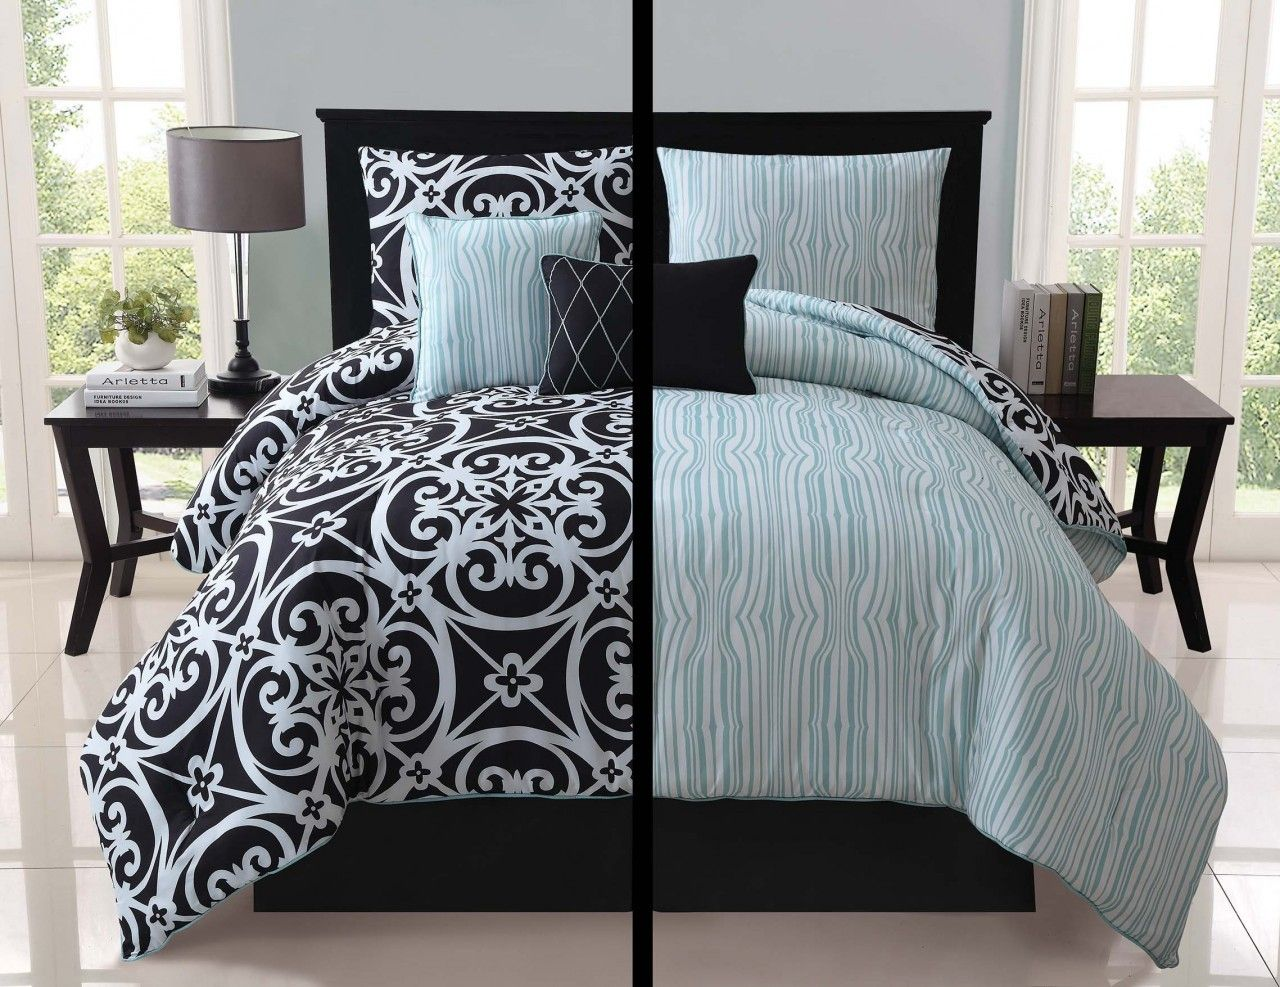 With Love Home Decor - 5pc Luxury Kennedy Black / White / Teal ...